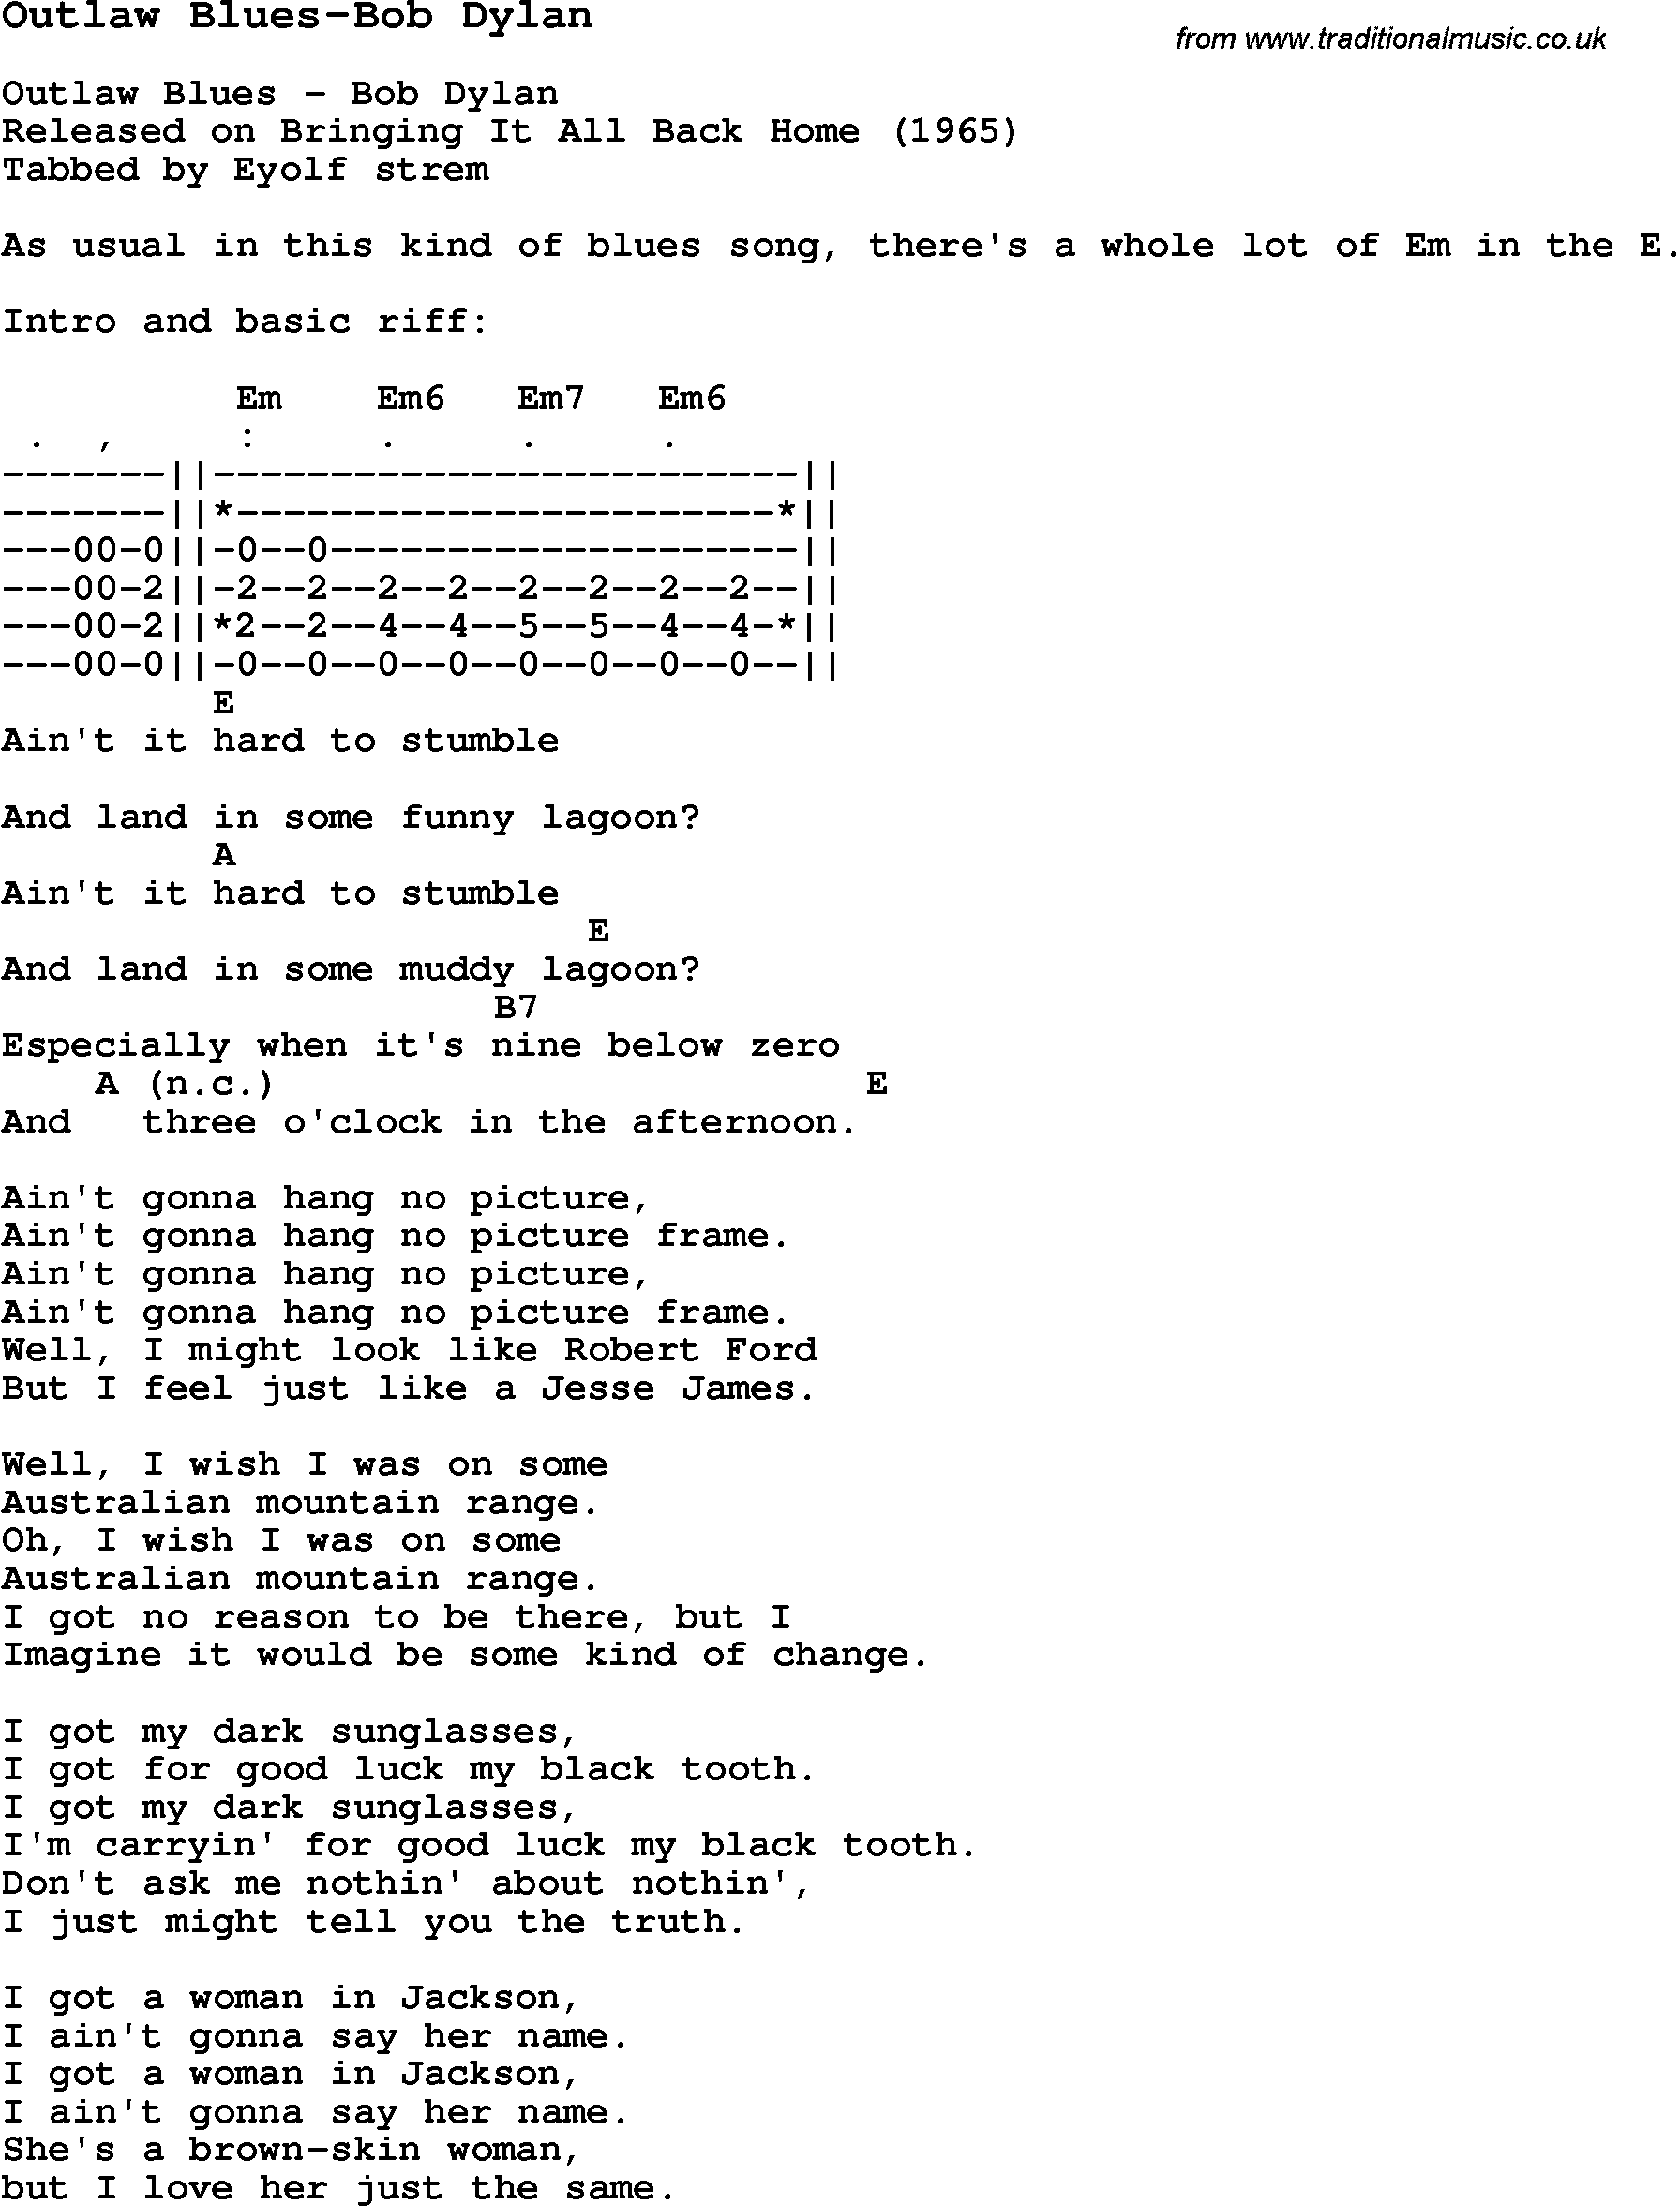 Blues Guitar lesson for Outlaw Blues-Bob Dylan, with Chords, Tabs, and Lyrics